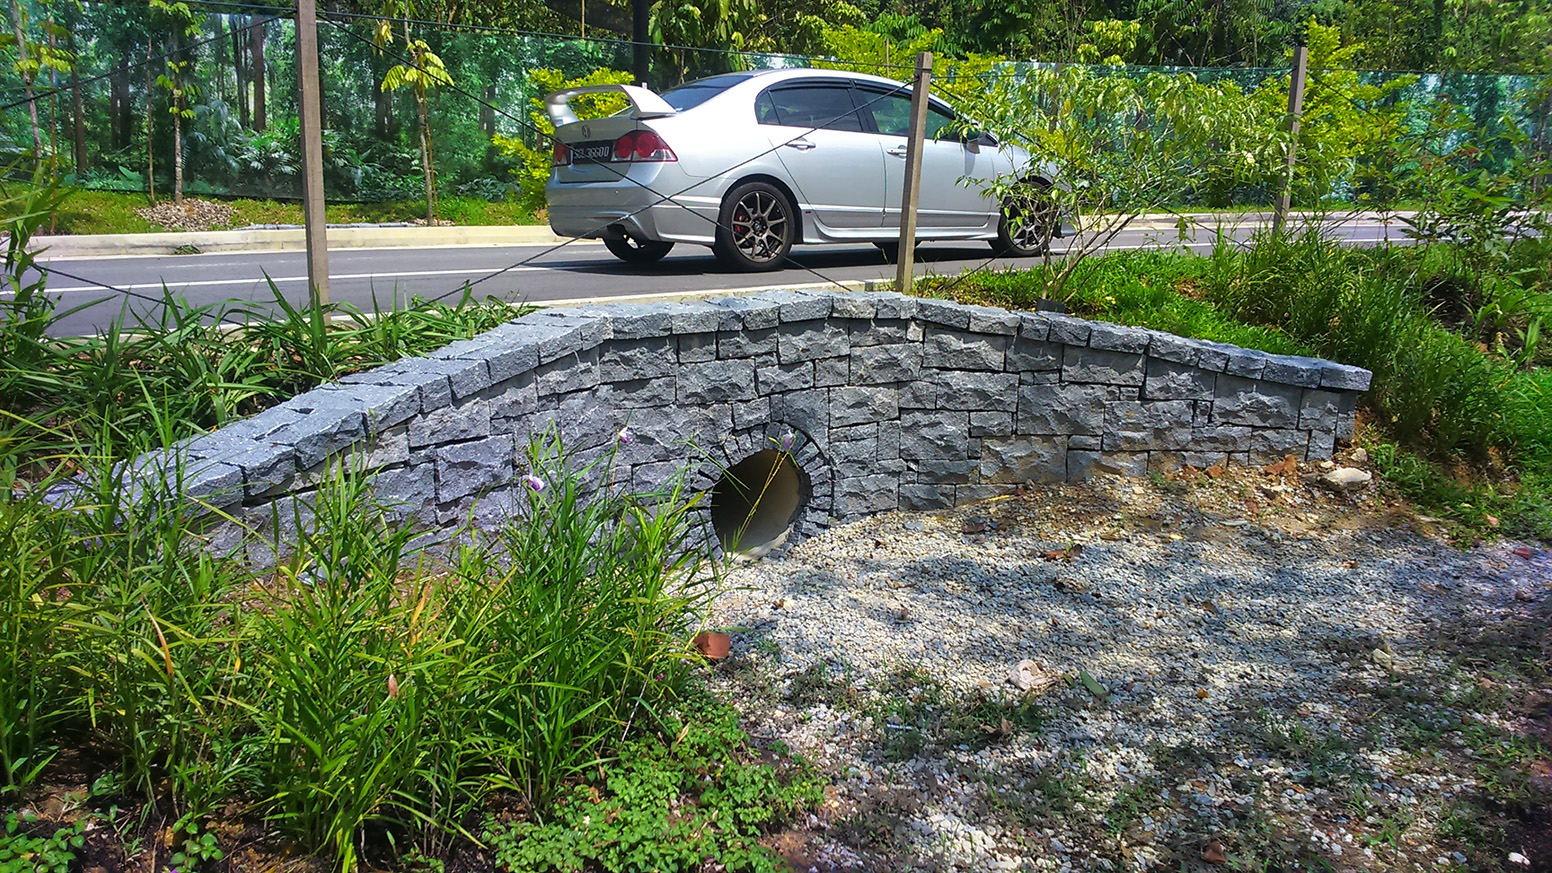 Stone clad culvert conveying water from the coach park area through to the wetland cell for treatment prior to discharge into the lower wetland lake